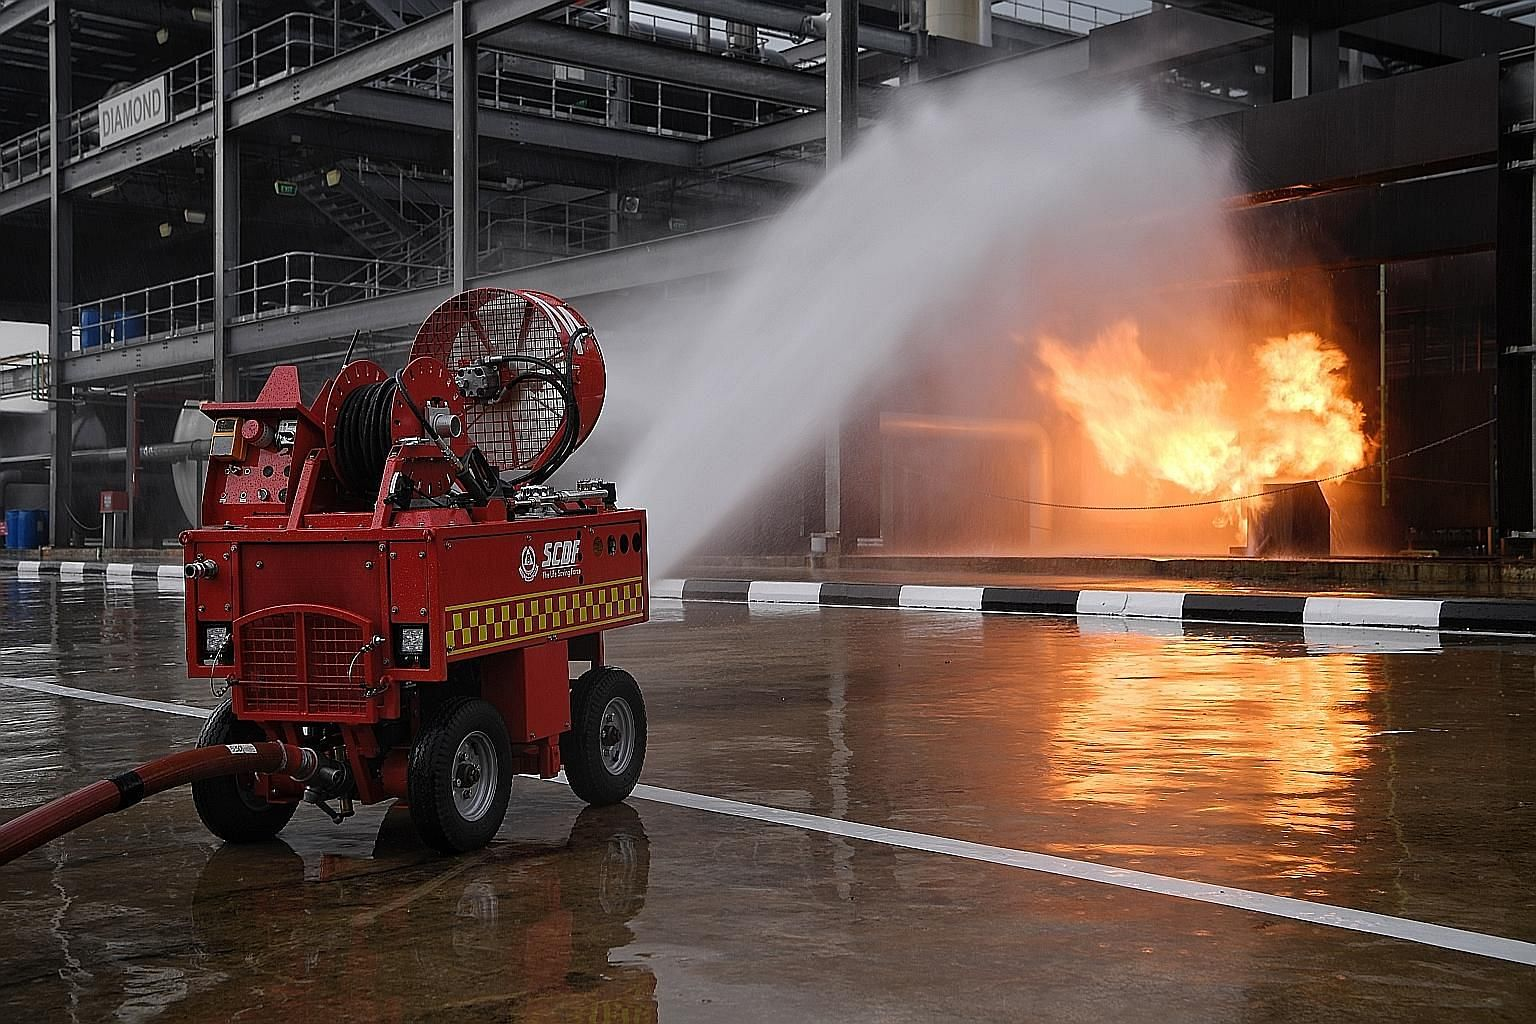 Some of the new technologies being explored by the Singapore Civil Defence Force include the pumper firefighting machine (above). The writer notes that the cost of counter-terrorist training and preparedness is rising, due in part to the higher costs